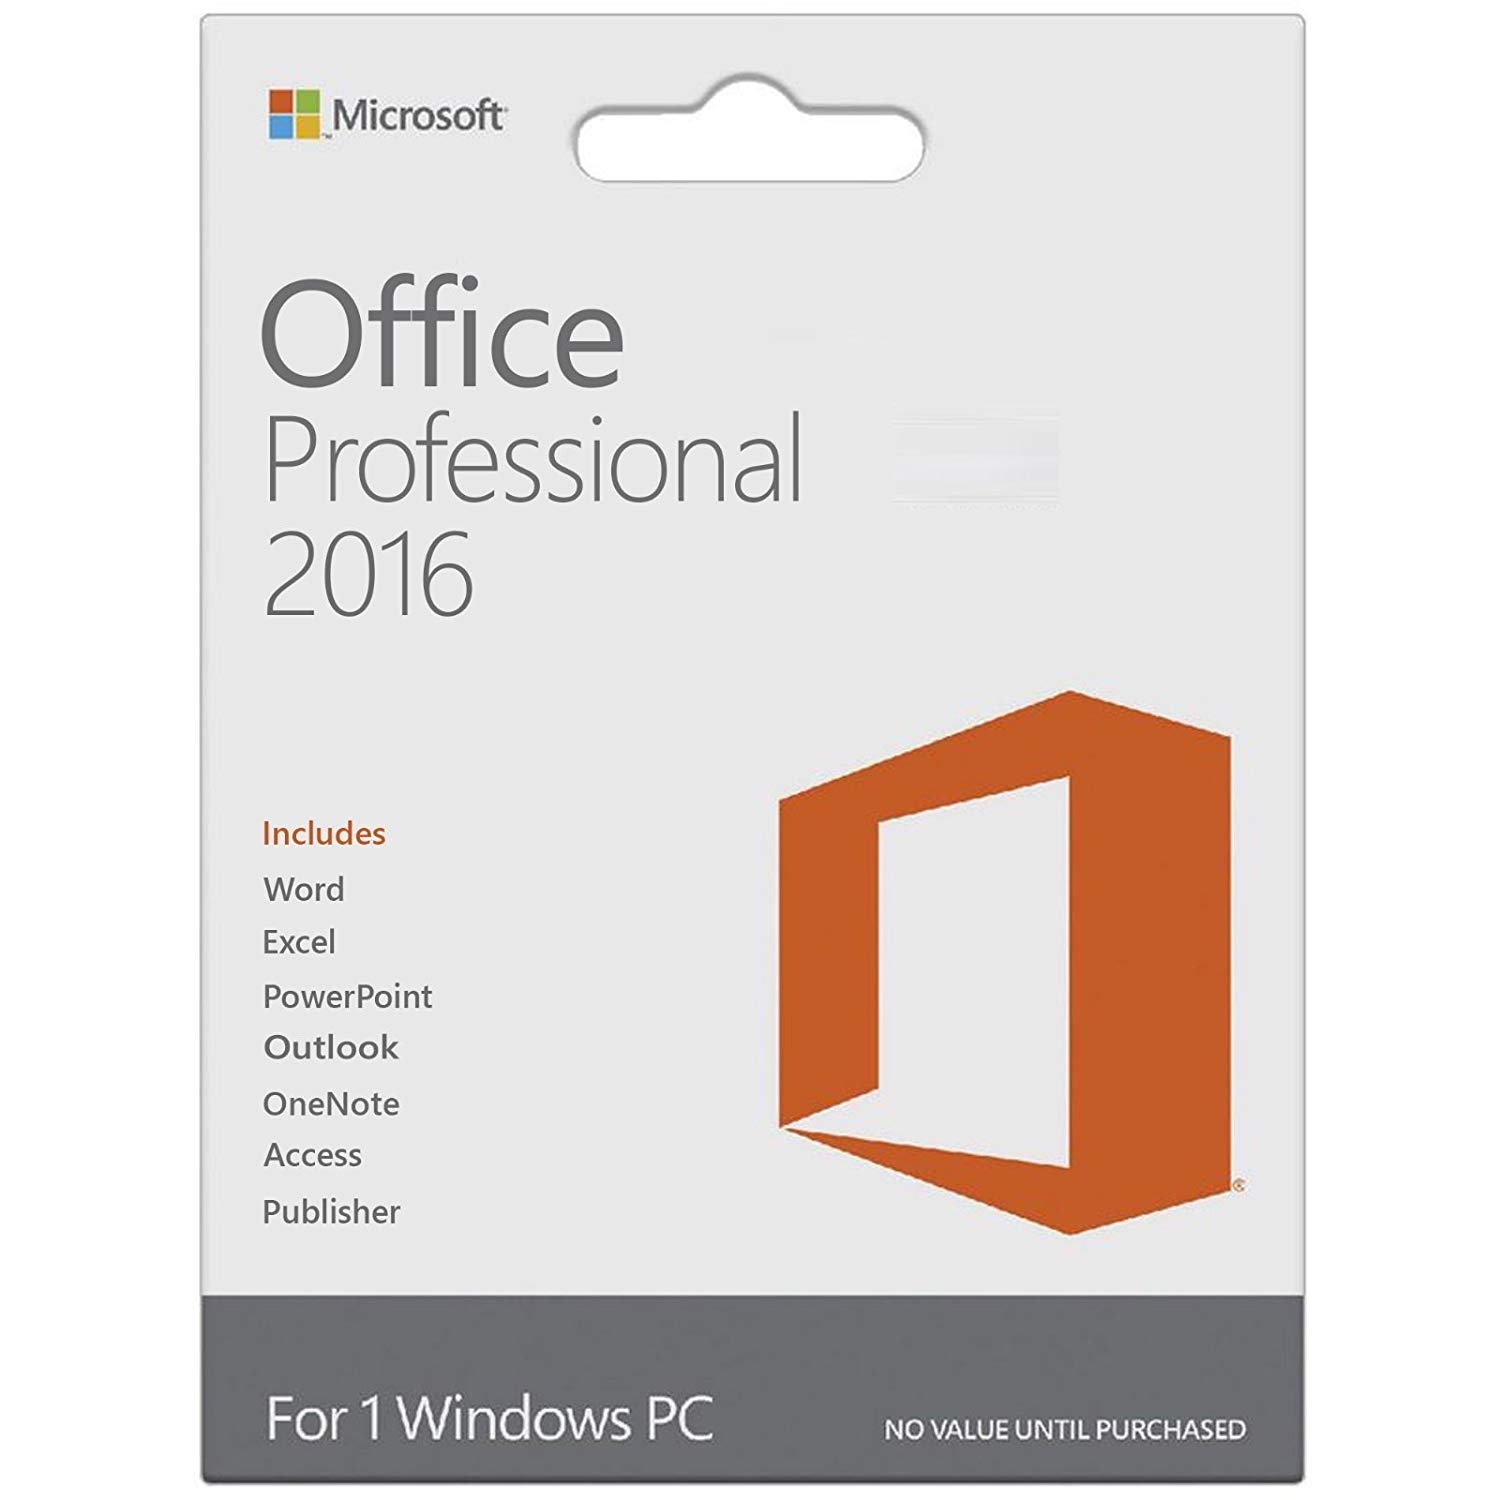 Microsoft Office 2016 Pro Plus |1 User, 1 PC ( Digital License ) VL